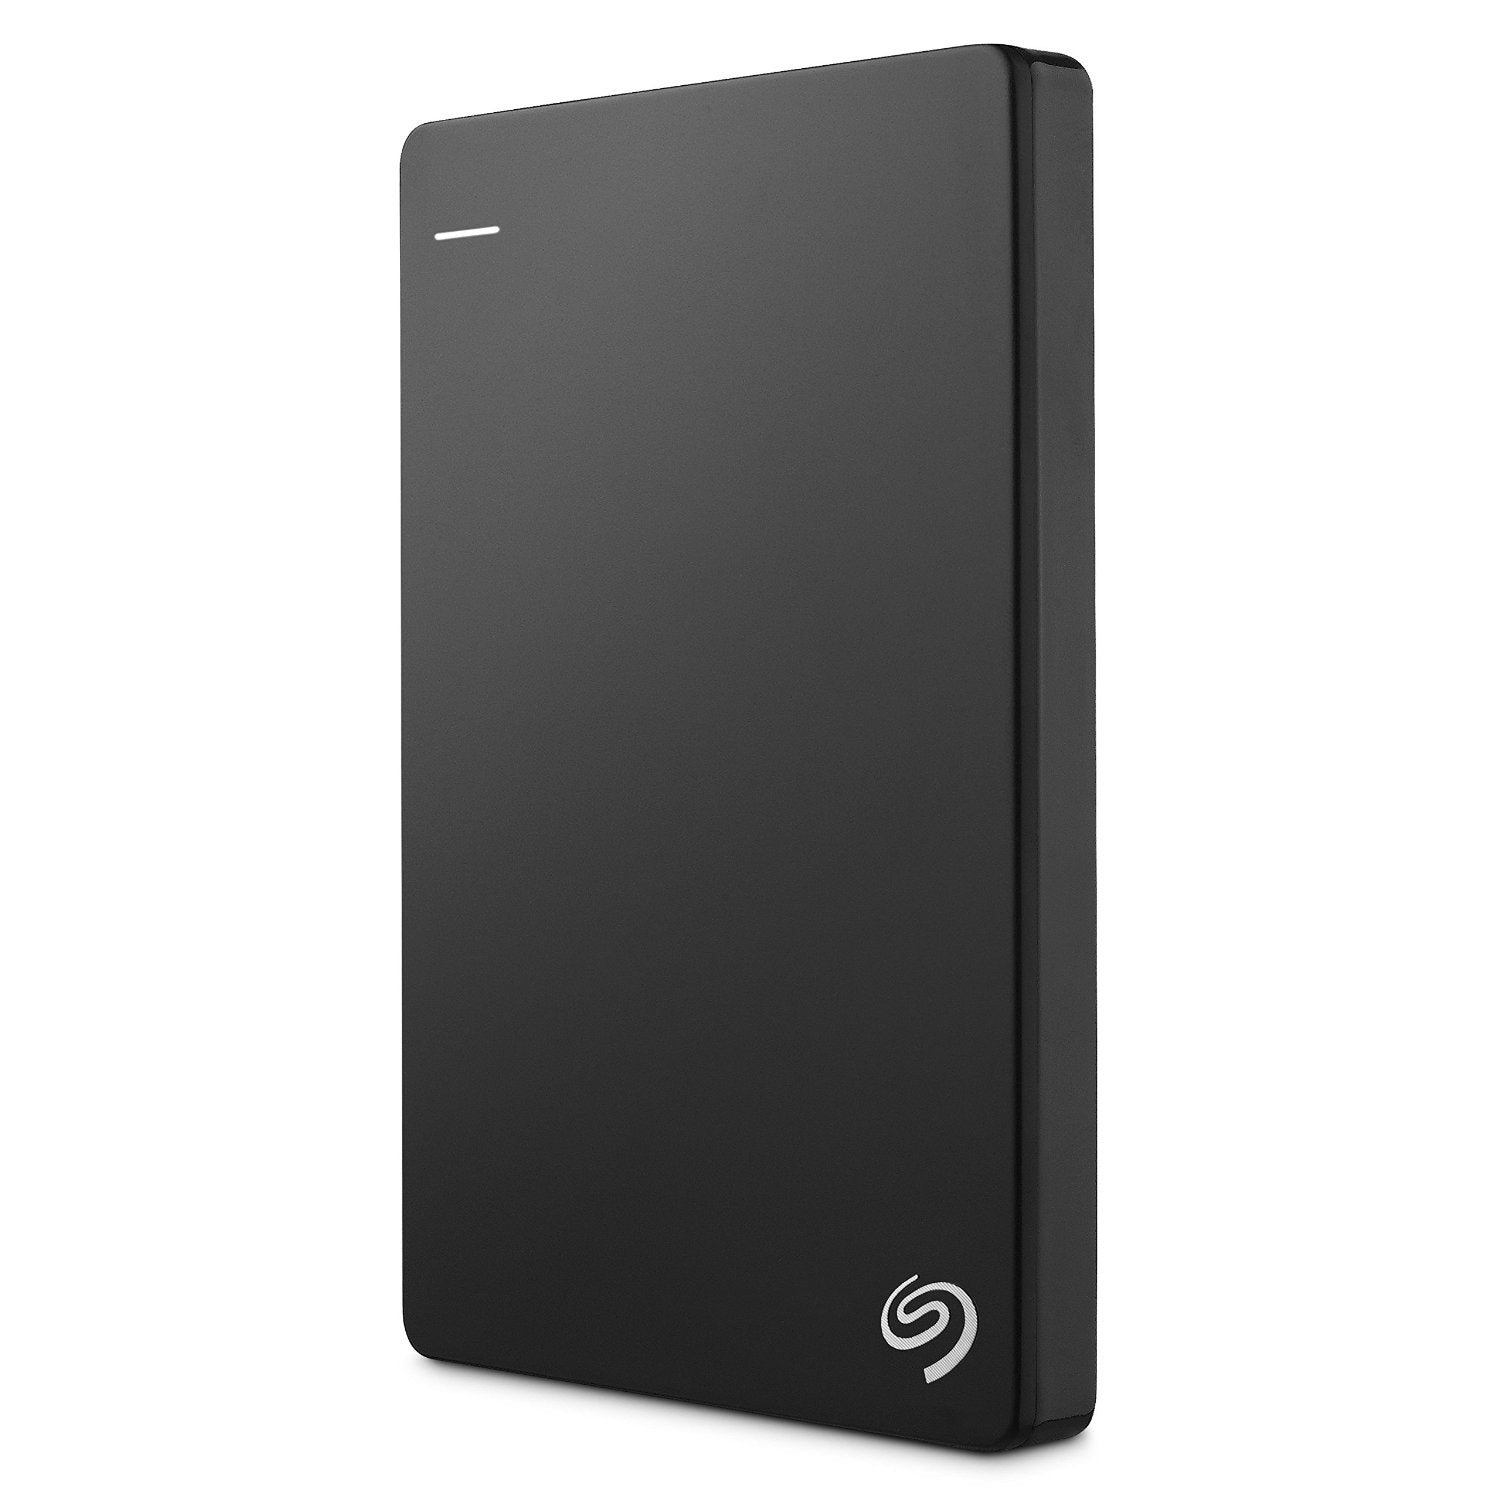 Seagate Backup Plus Slim 2TB Portable External Hard Drive & Mobile Device Backup (Black)